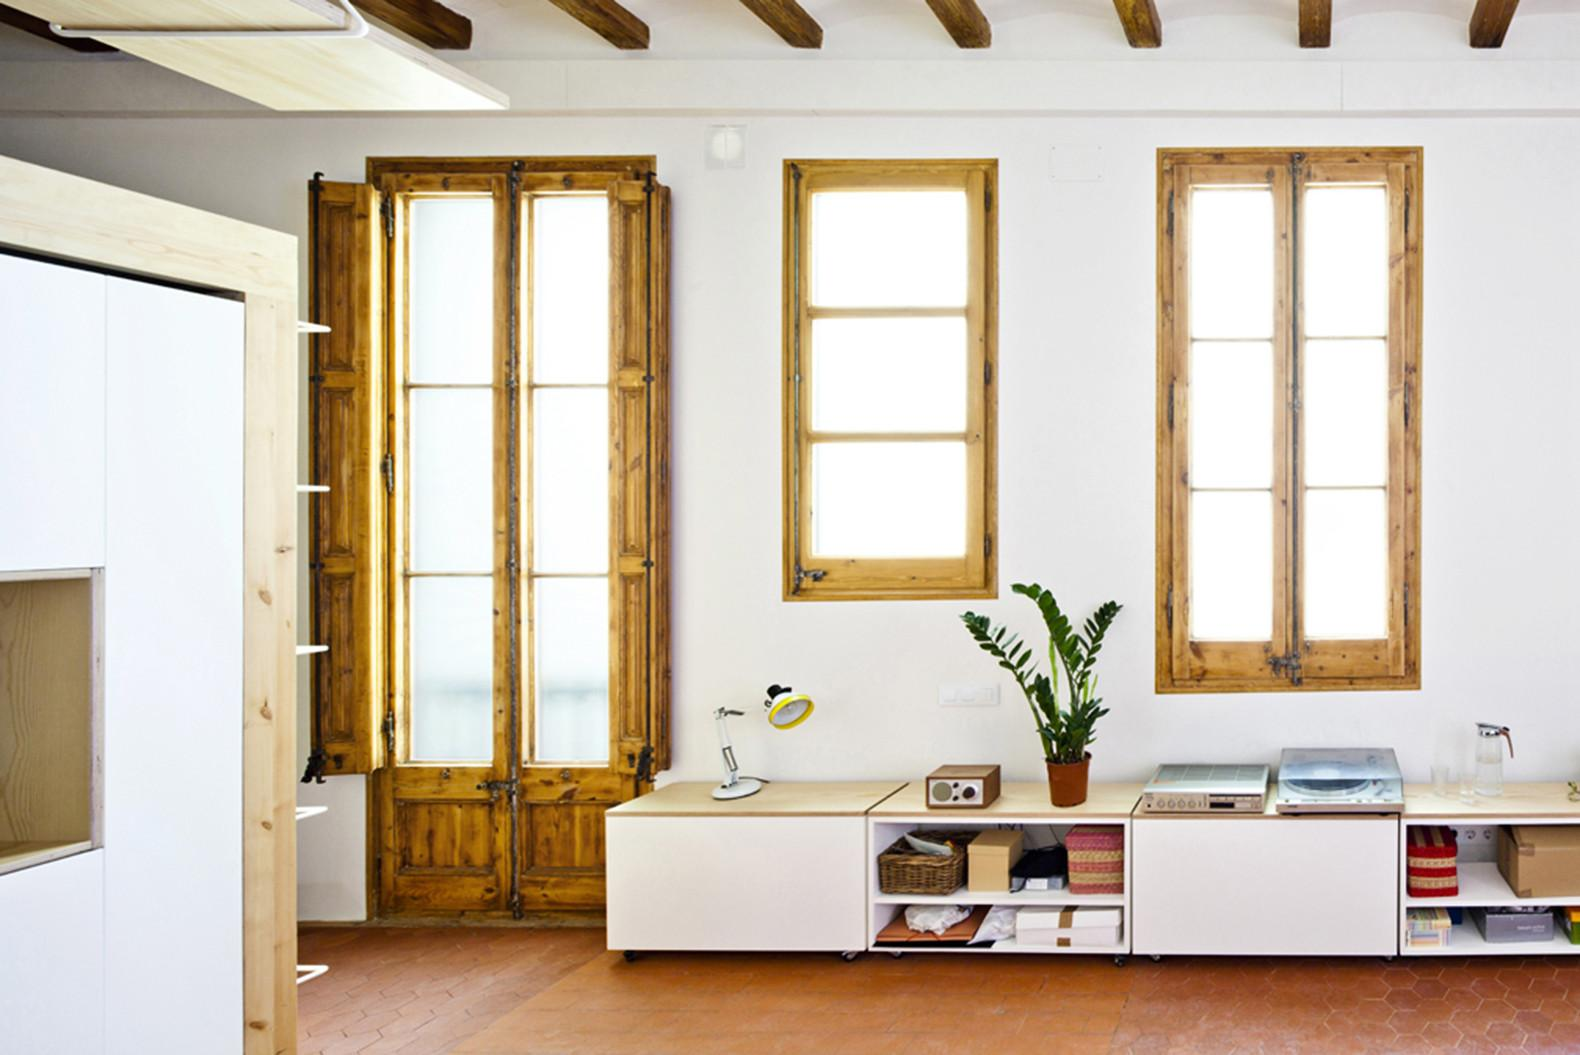 Playful Renovation Barcelona Squeezes More Out